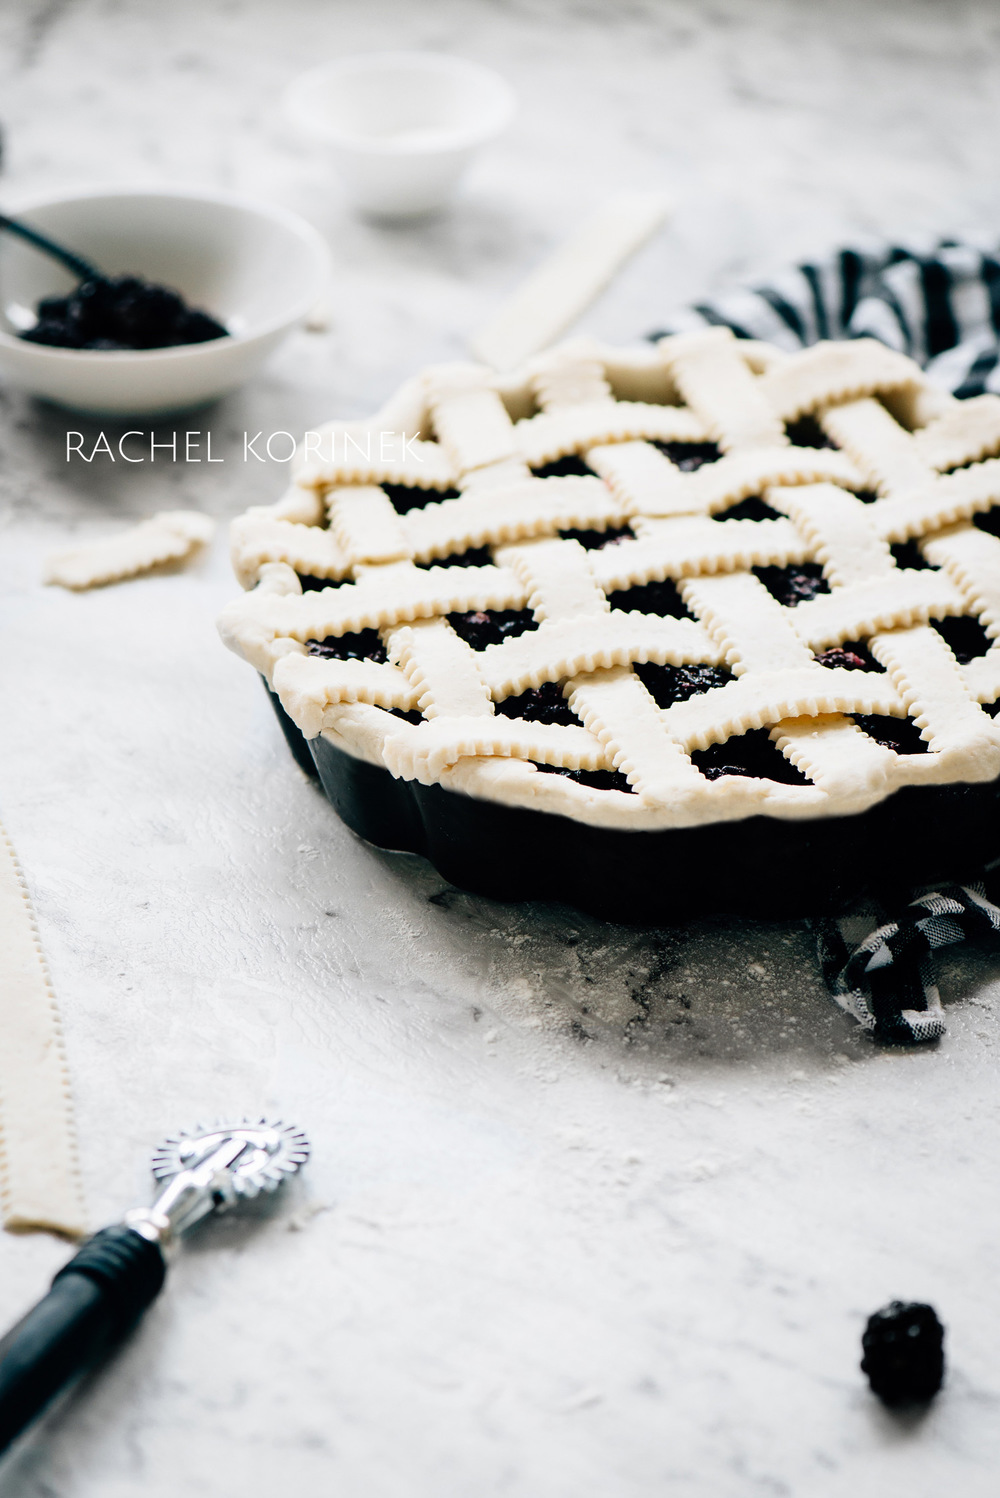 Rachel Korinek Food Photographer Melbourne | Black White Food Photography